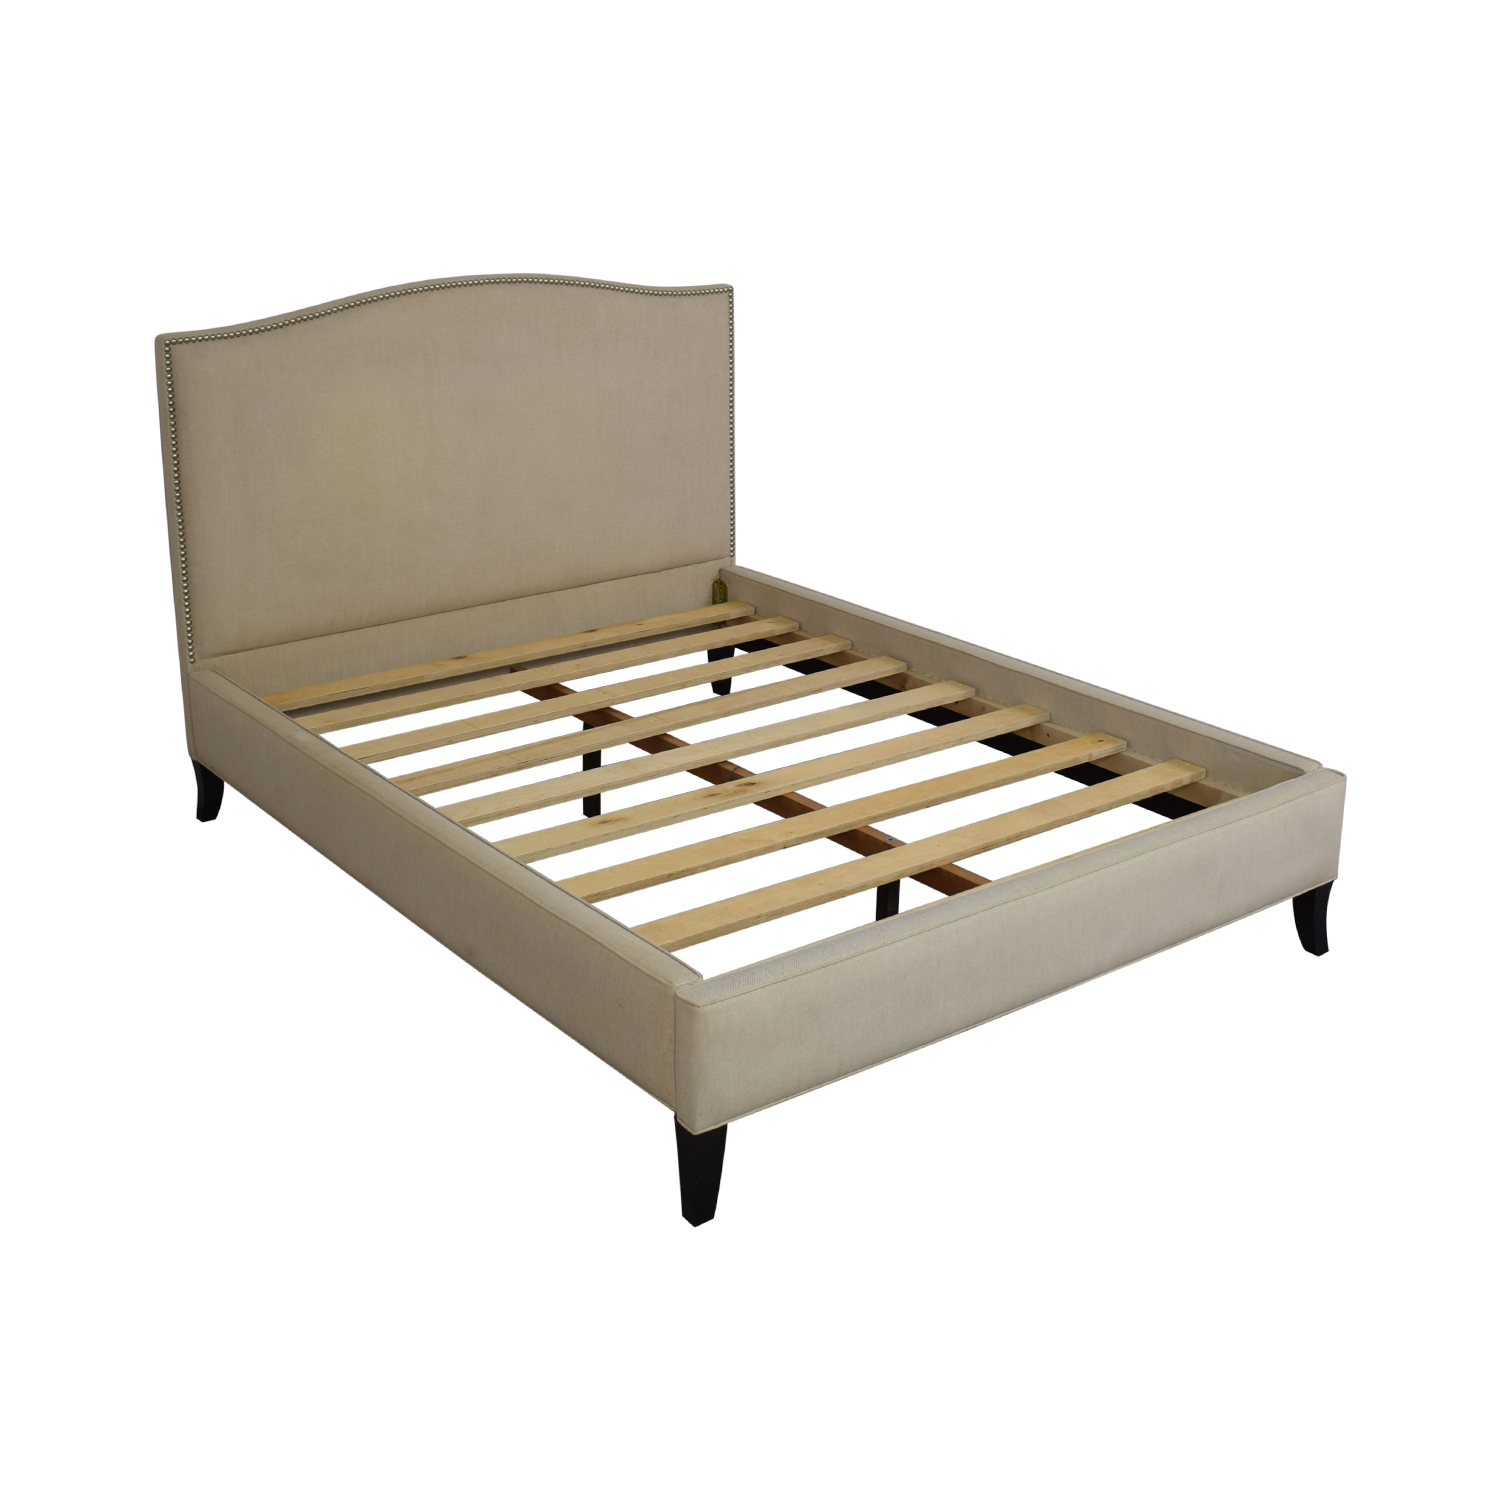 Crate & Barrel Crate & Barrel Colette Queen Upholstered Bed used